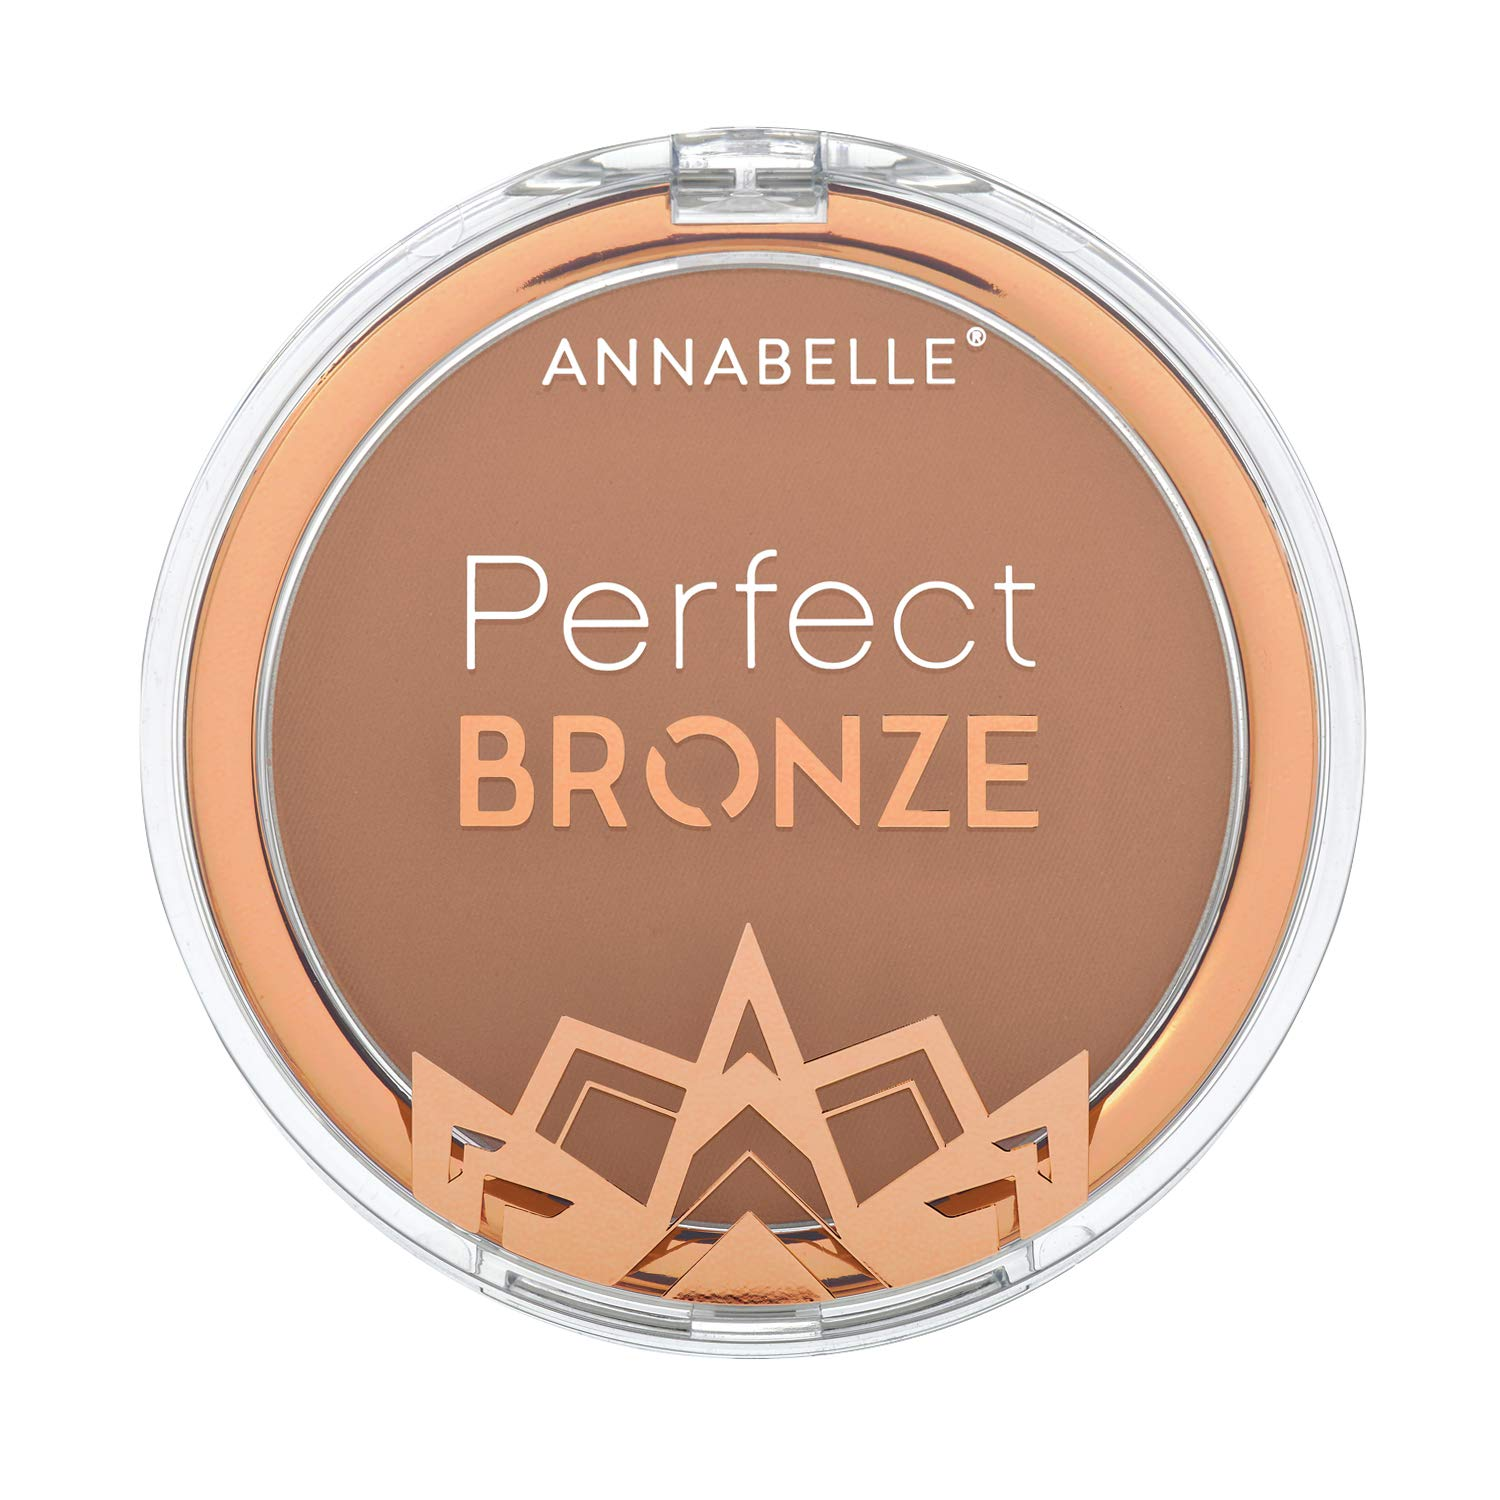 Annabelle Perfect Bronze, Sun Kissed, 10 g Groupe Marcelle Inc.